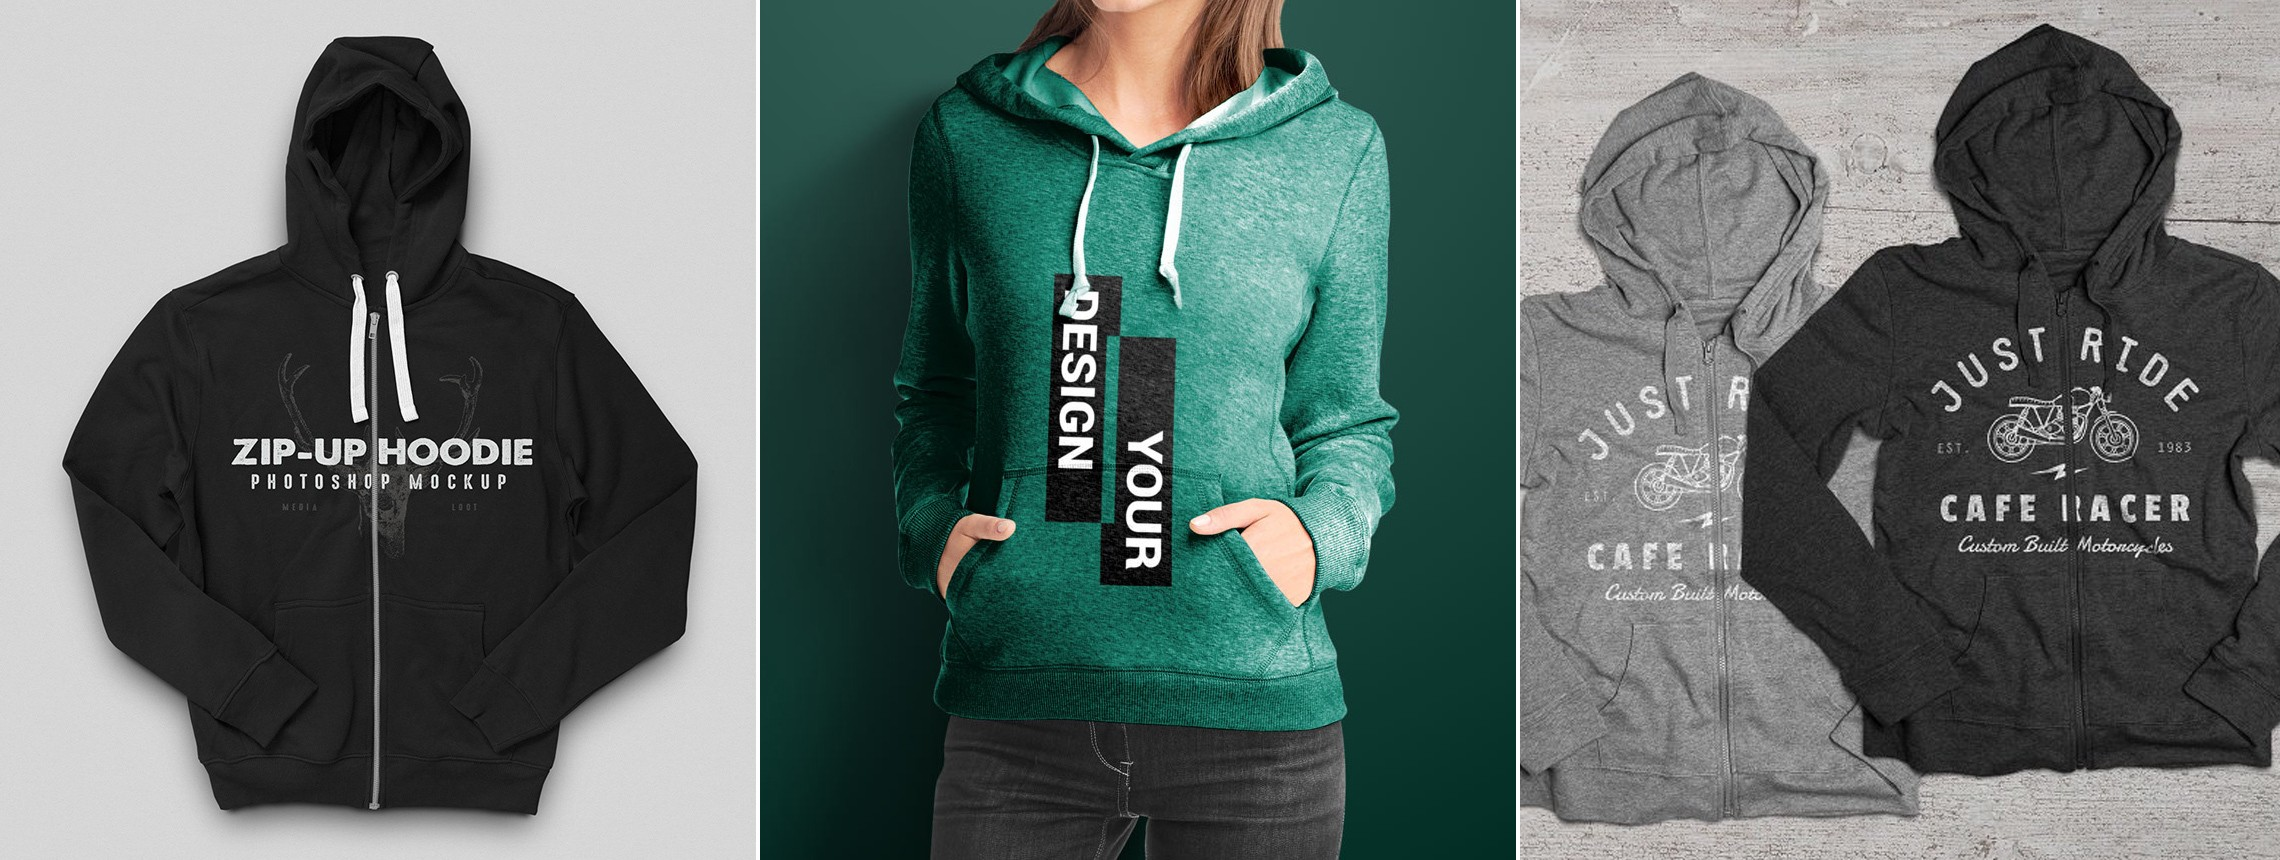 24 Hoodie Mockup Templates to Put Your Logo On